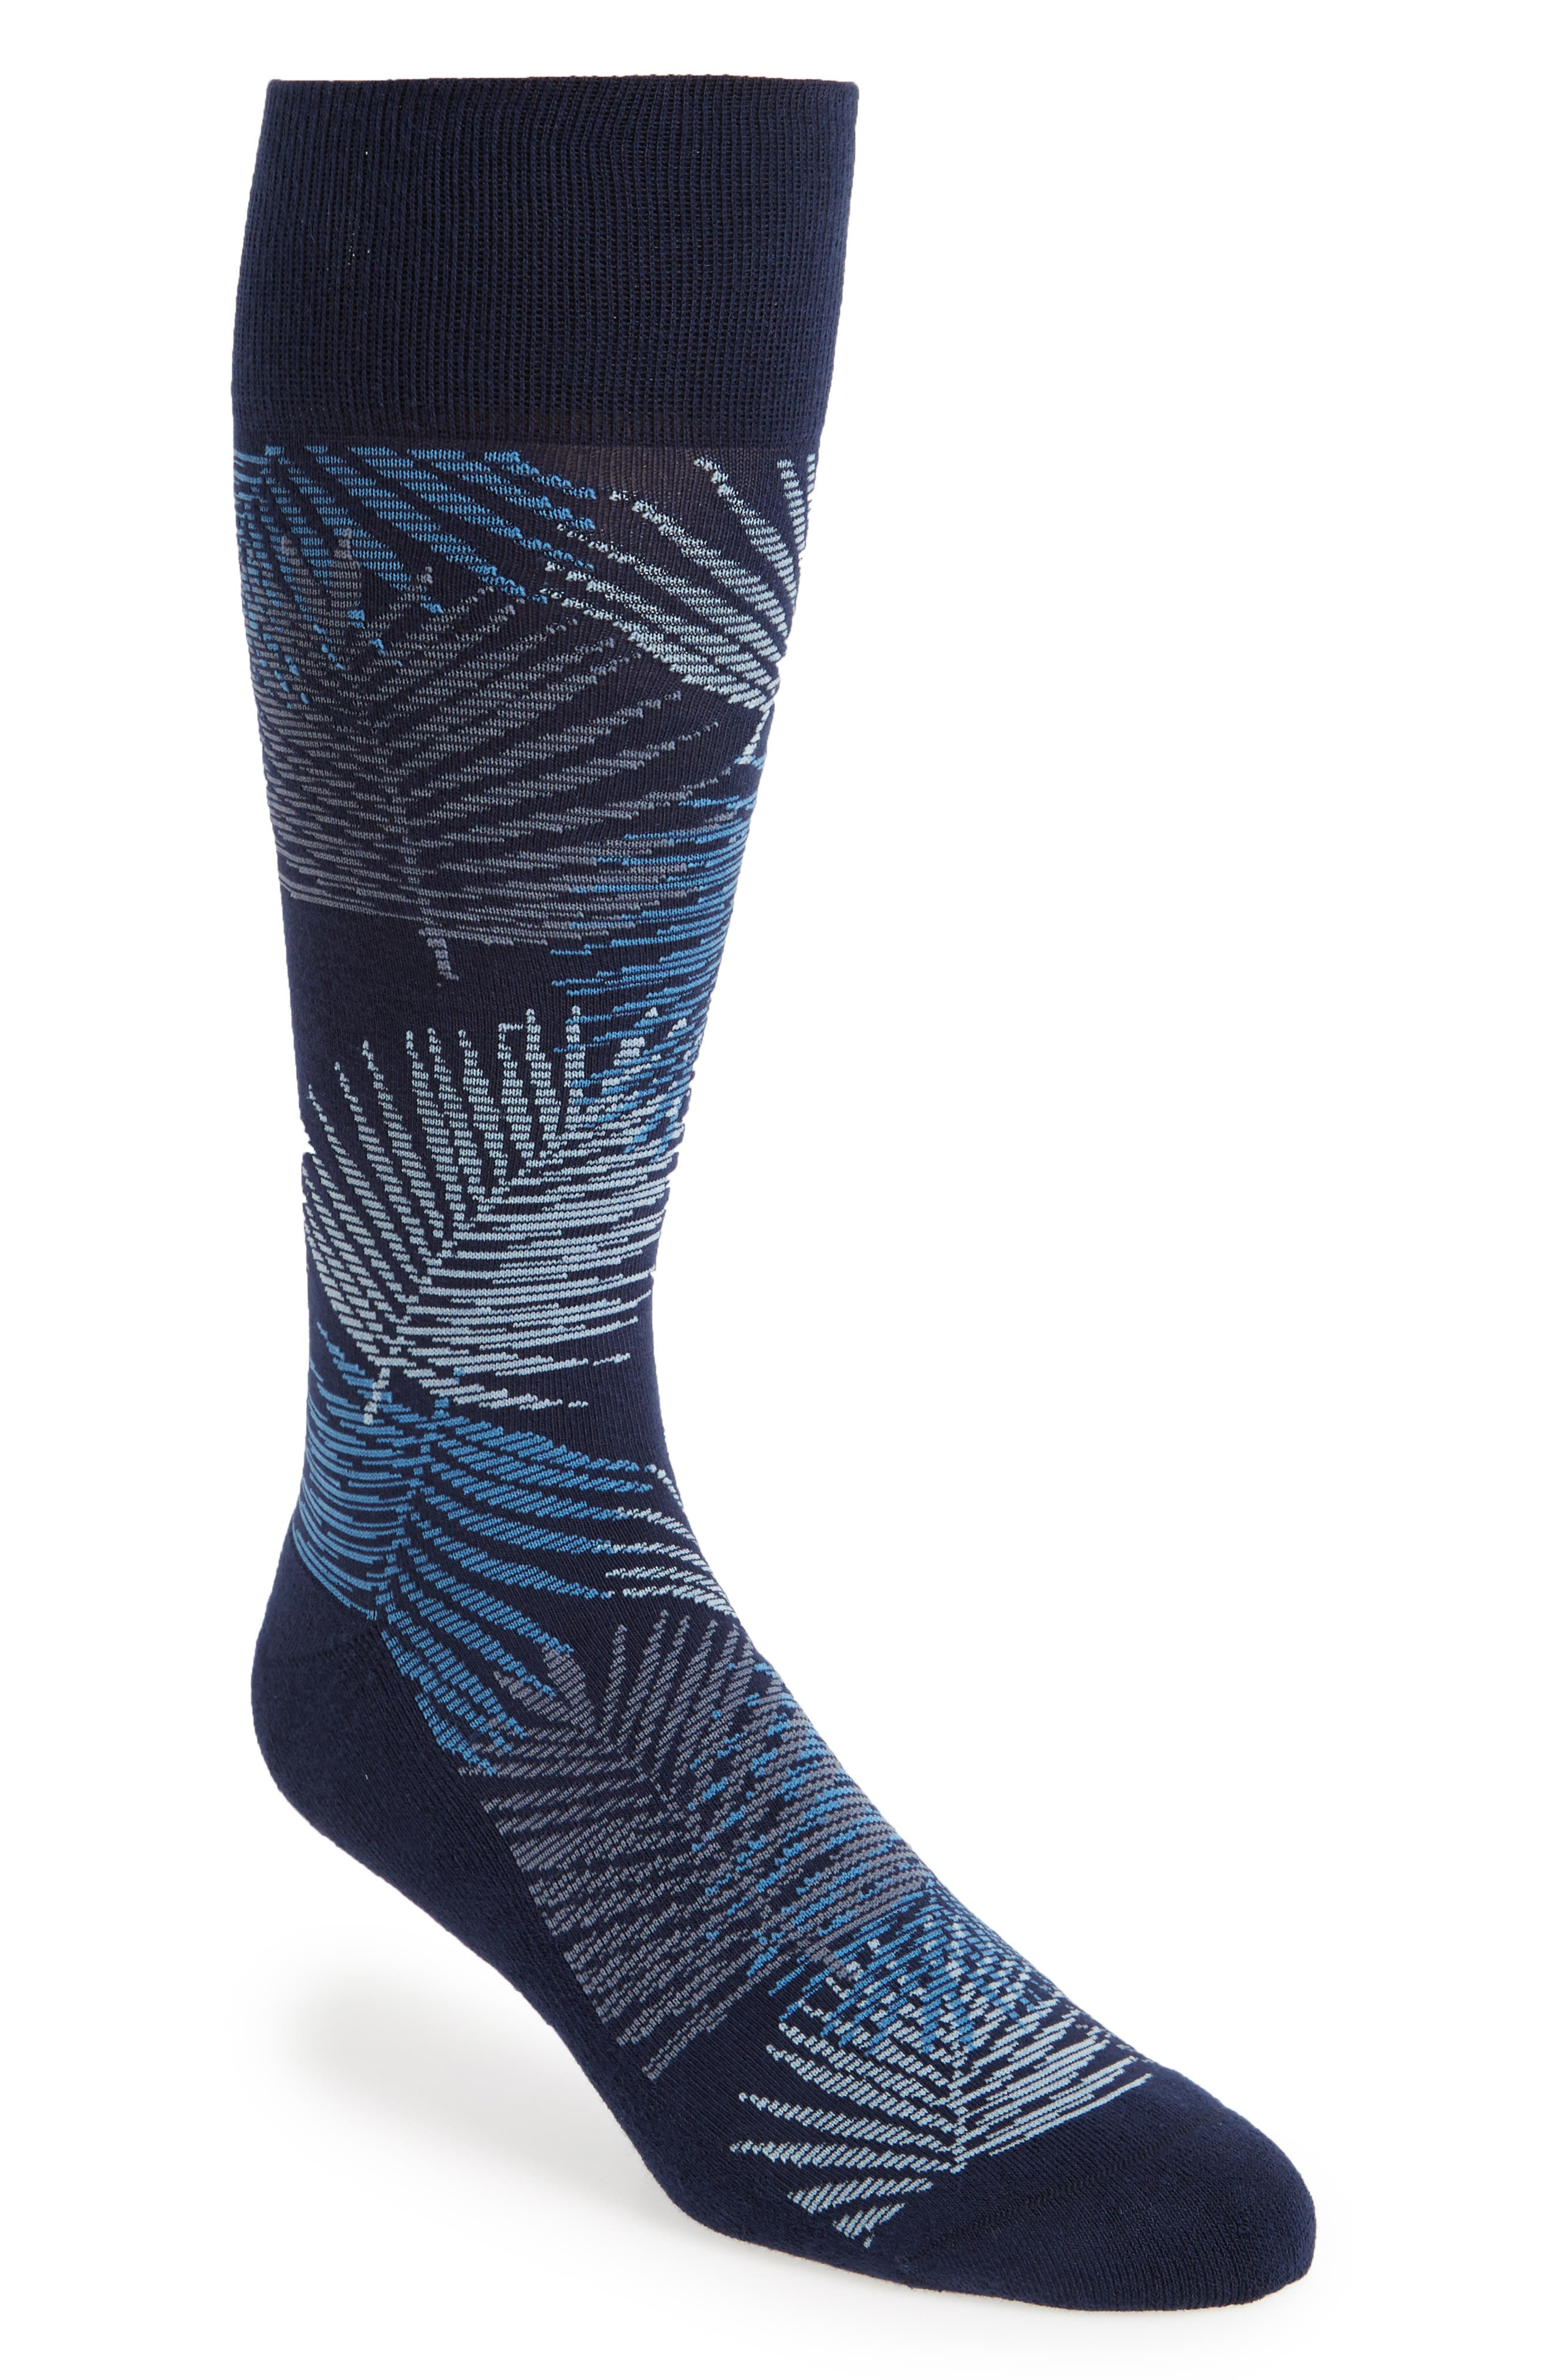 Evening Palm Frond Socks,                         Main,                         color, NAVY/ BLUE